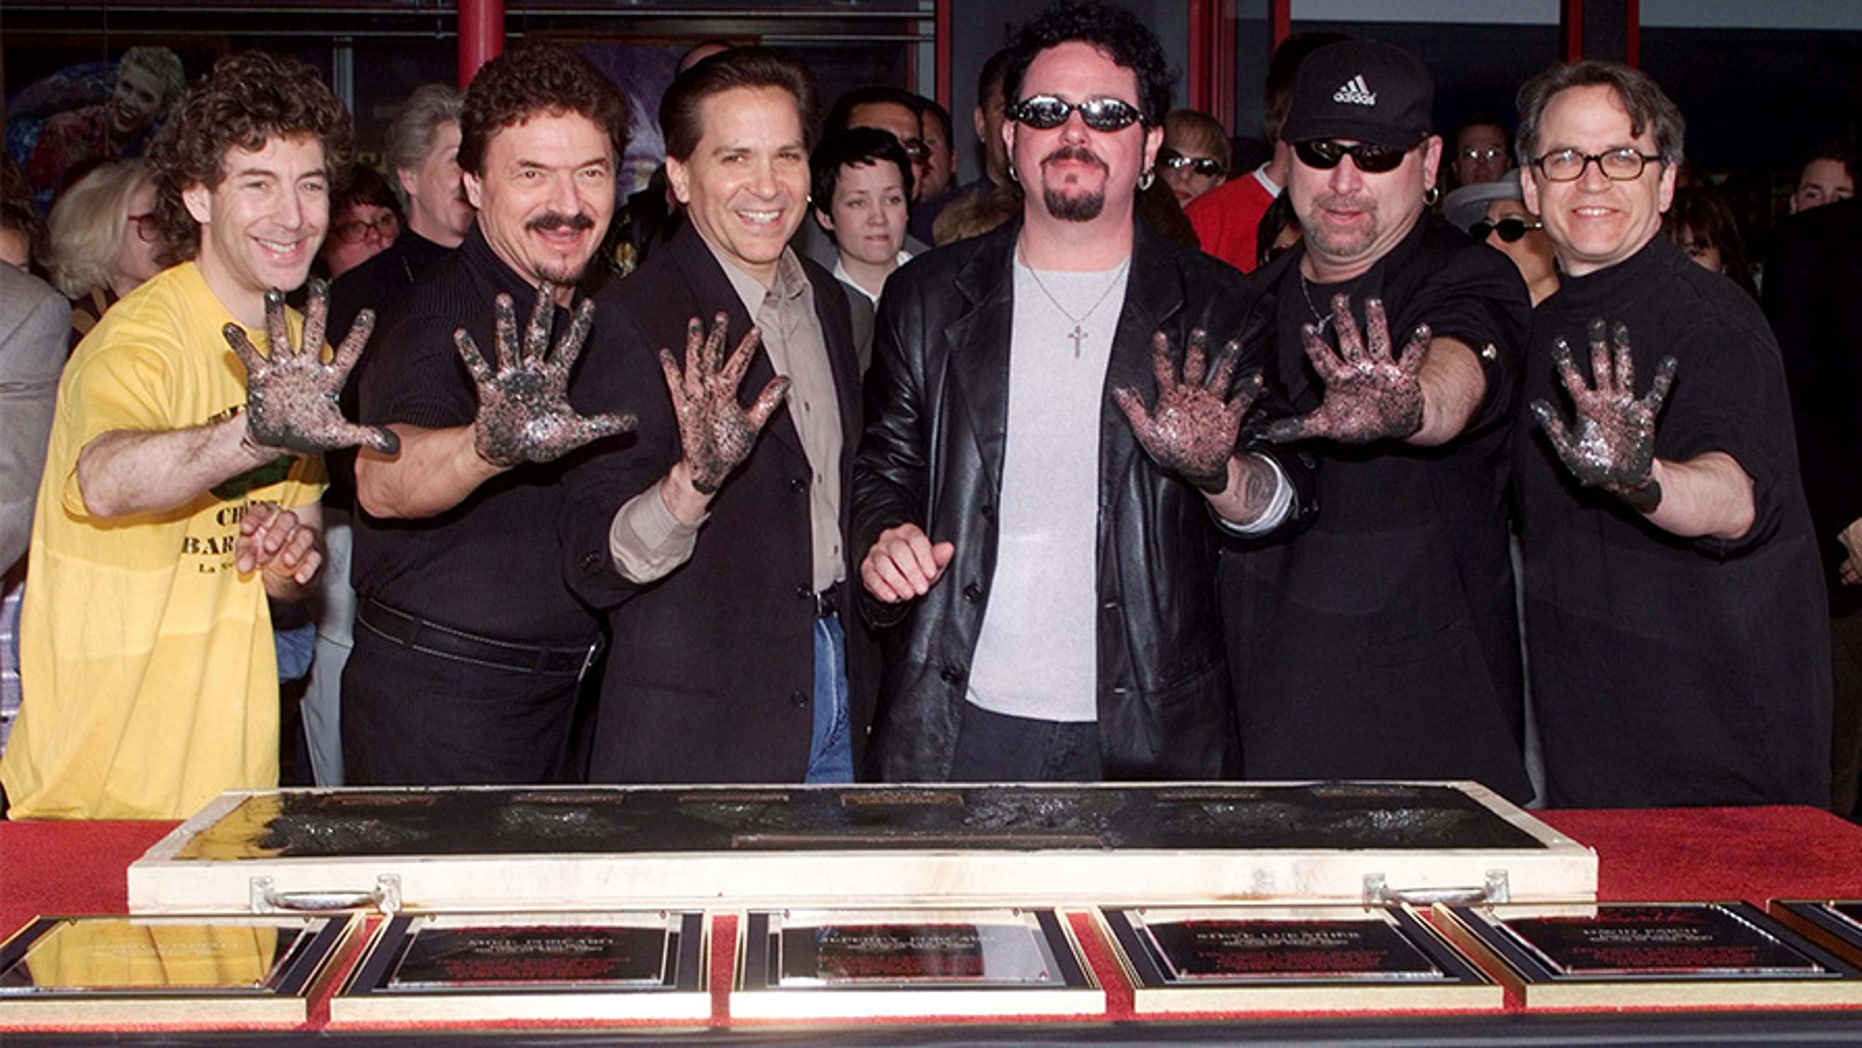 """Members of the rock band Toto pose after placing their handprints in cement as they were inducted into Hollywood's RockWalk May 4 in Hollywood. The band, best know for songs such as """"Rosanna"""" and """"Hold The Line"""" were honored for their contributions to the rock n' roll artform. Shown (L-R) are Simon Phillips, Bobby Kimball, Mike Porcaro, Steve Lukather, David Paich and Steve Porcaro.**DIGITAL IMAGE** - PBEAHULUKEG"""